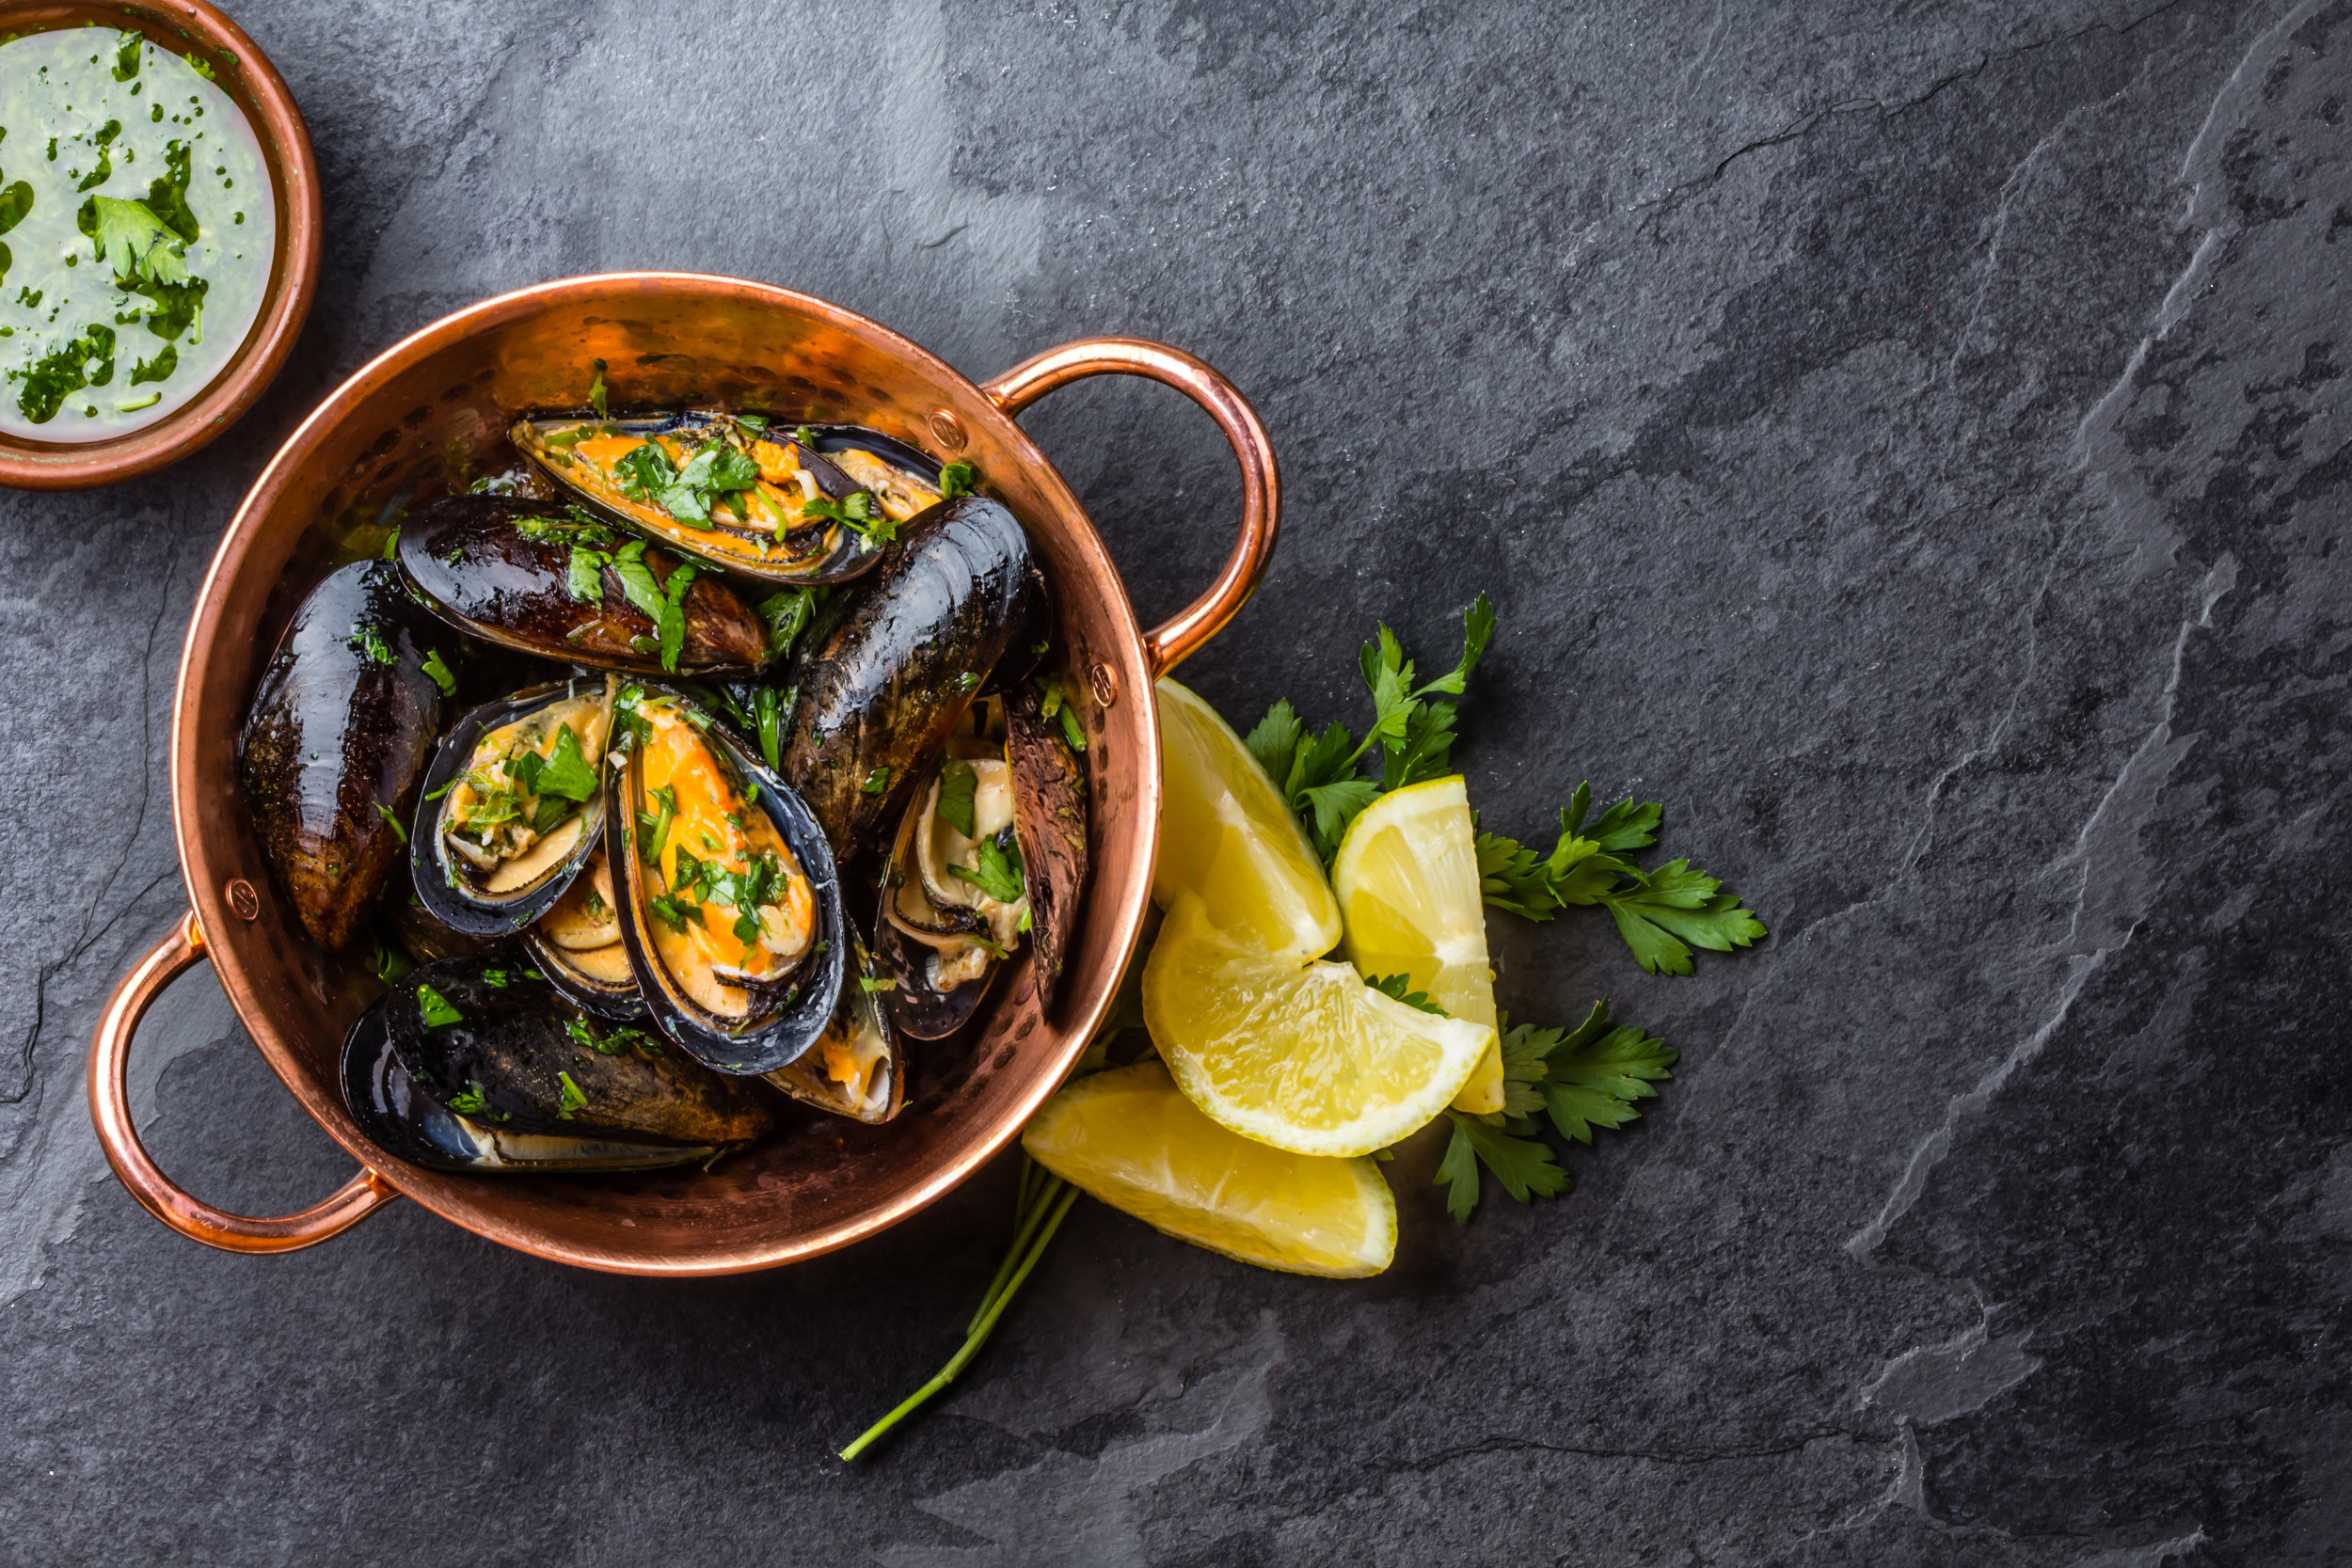 Steamed Mussels with lemon & parsley